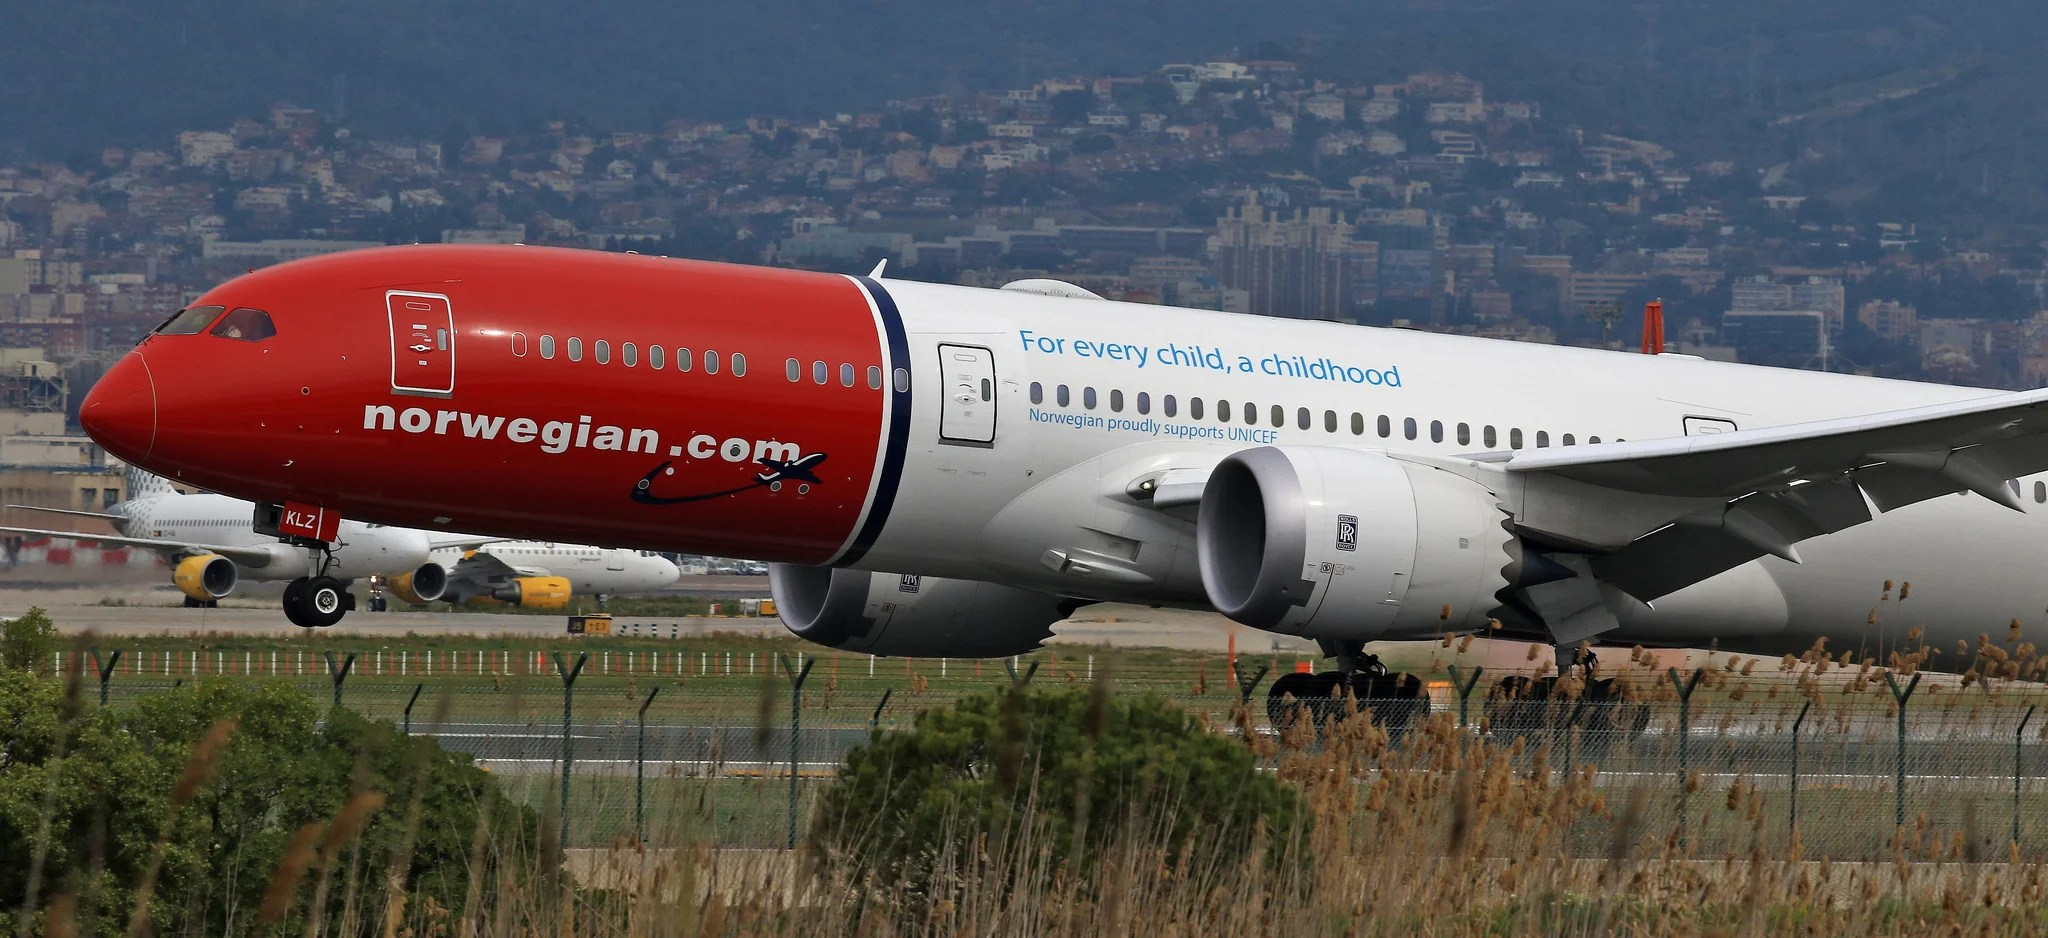 Struggling Norwegian Air Expanding From Chicago and NYC to Europe, Fares From $160 One-Way